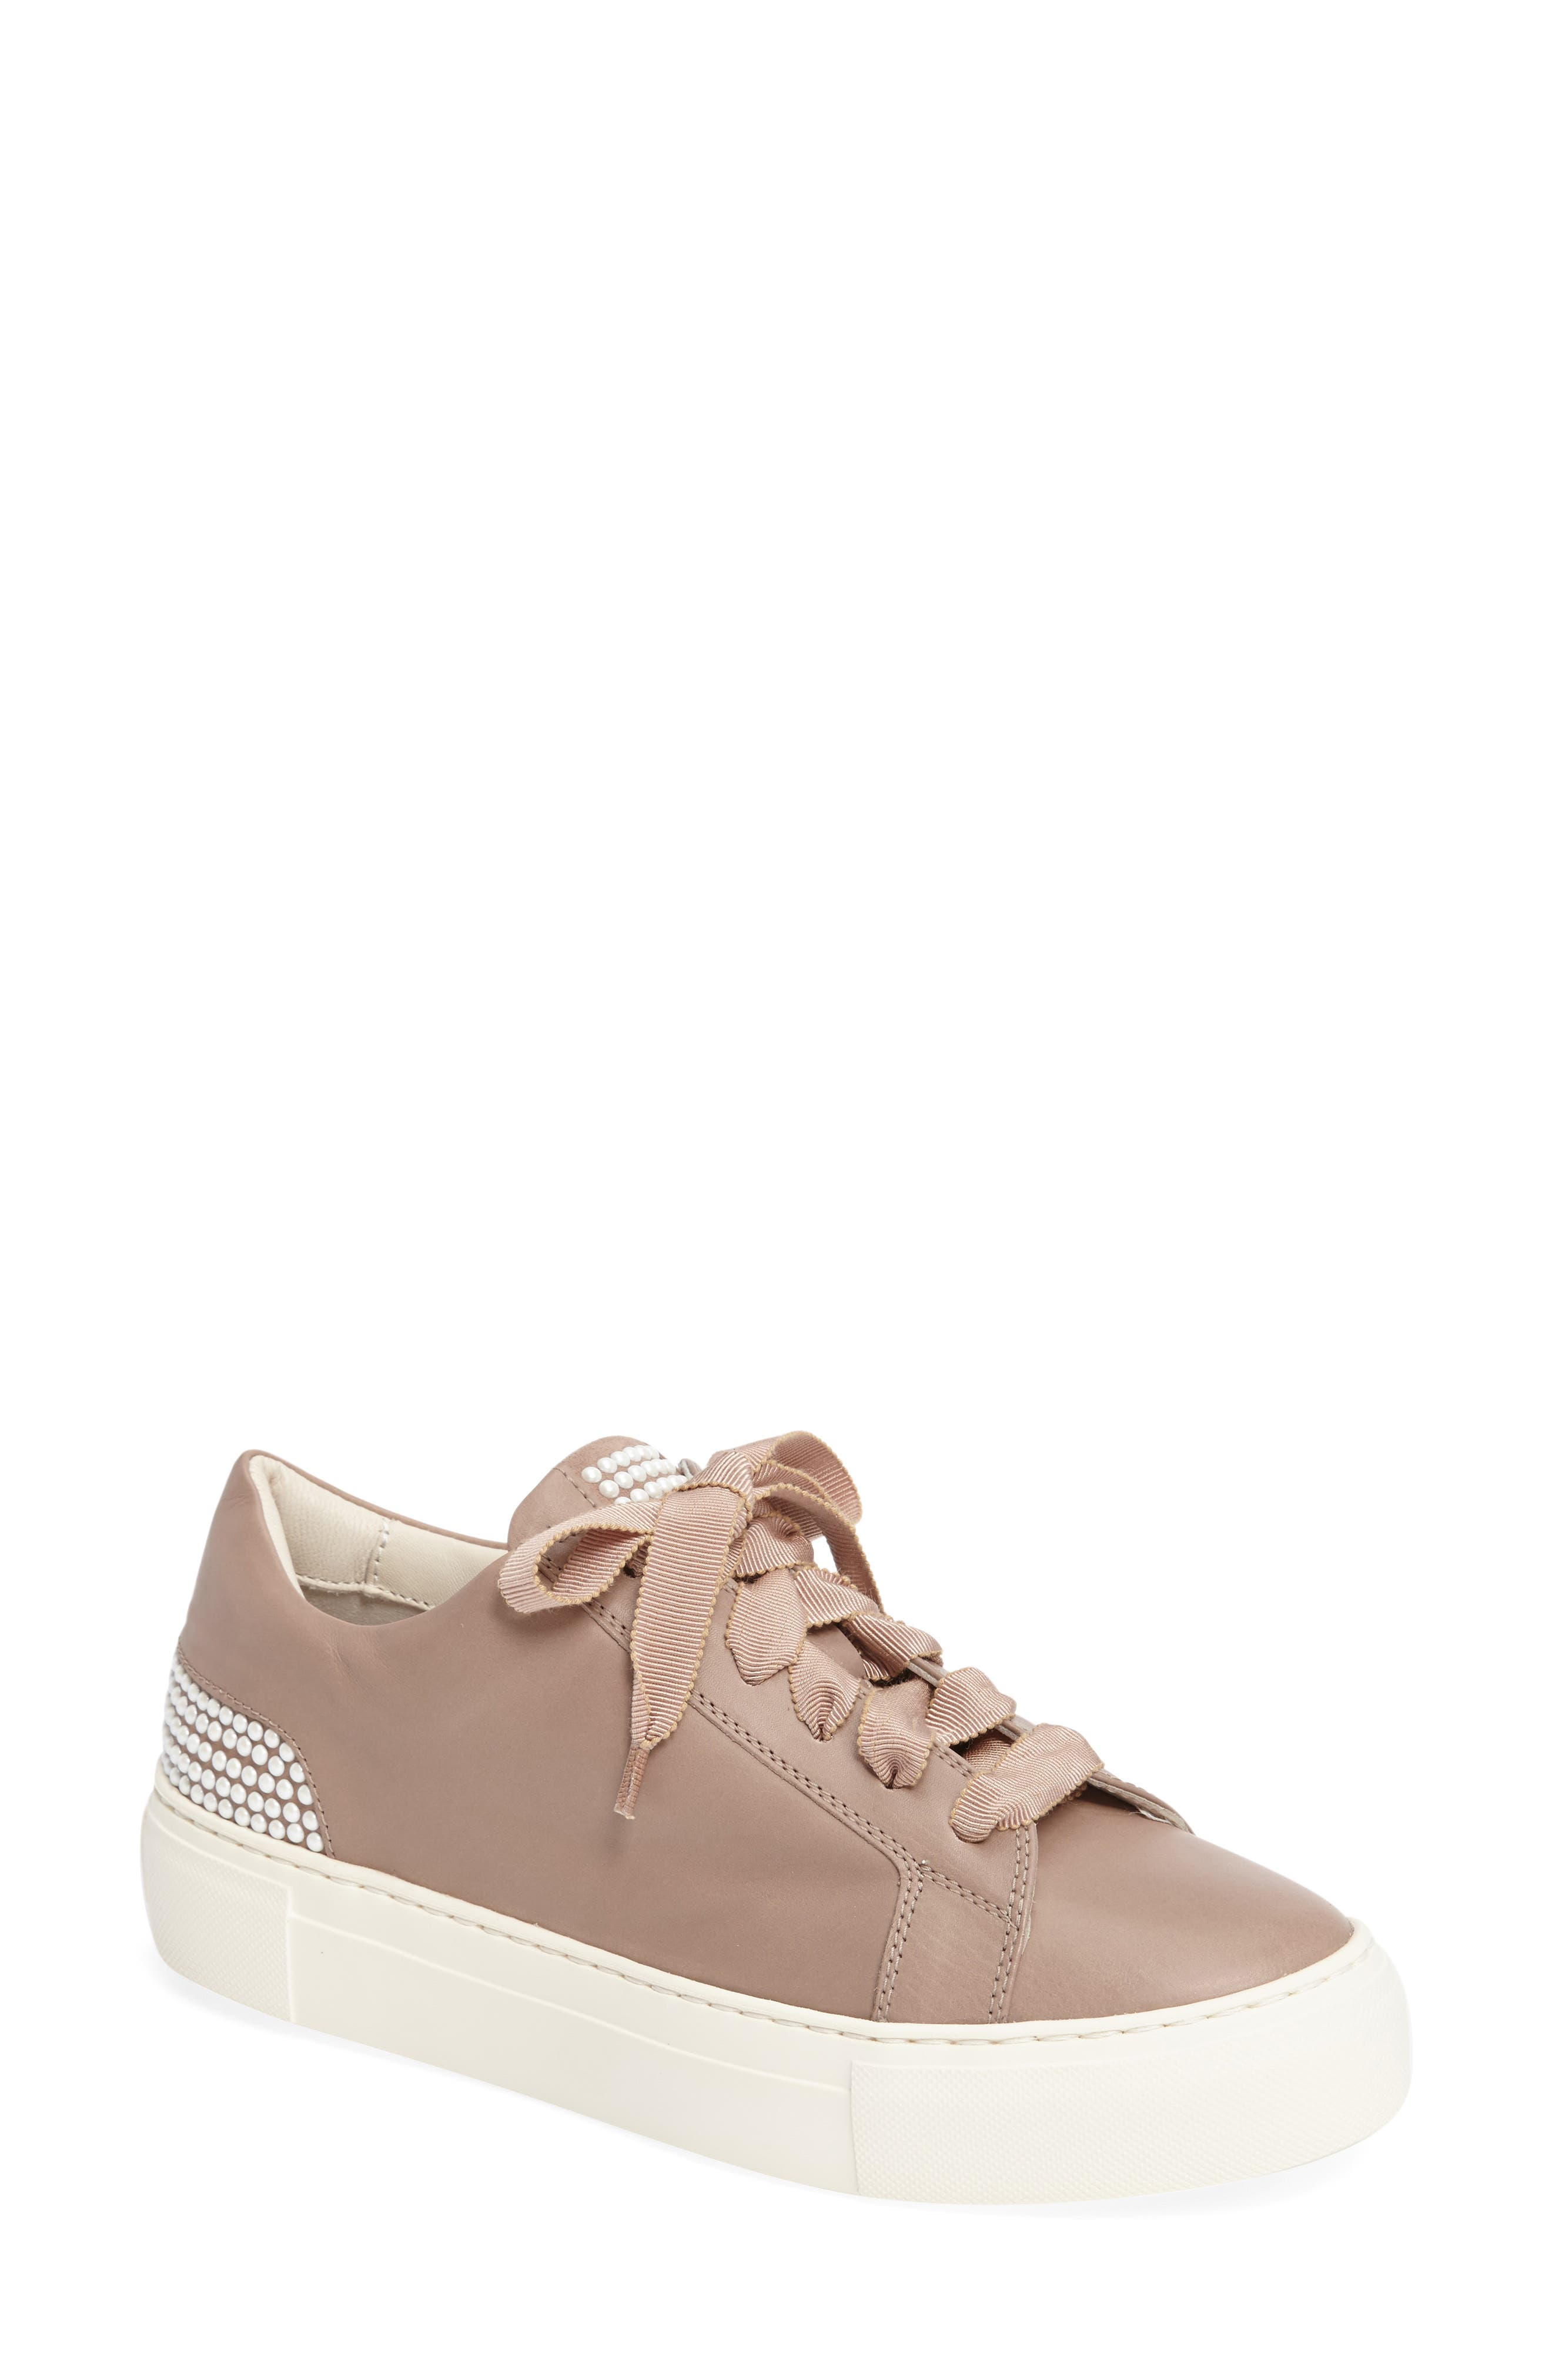 Pearl Sneaker,                         Main,                         color, PALE LEATHER